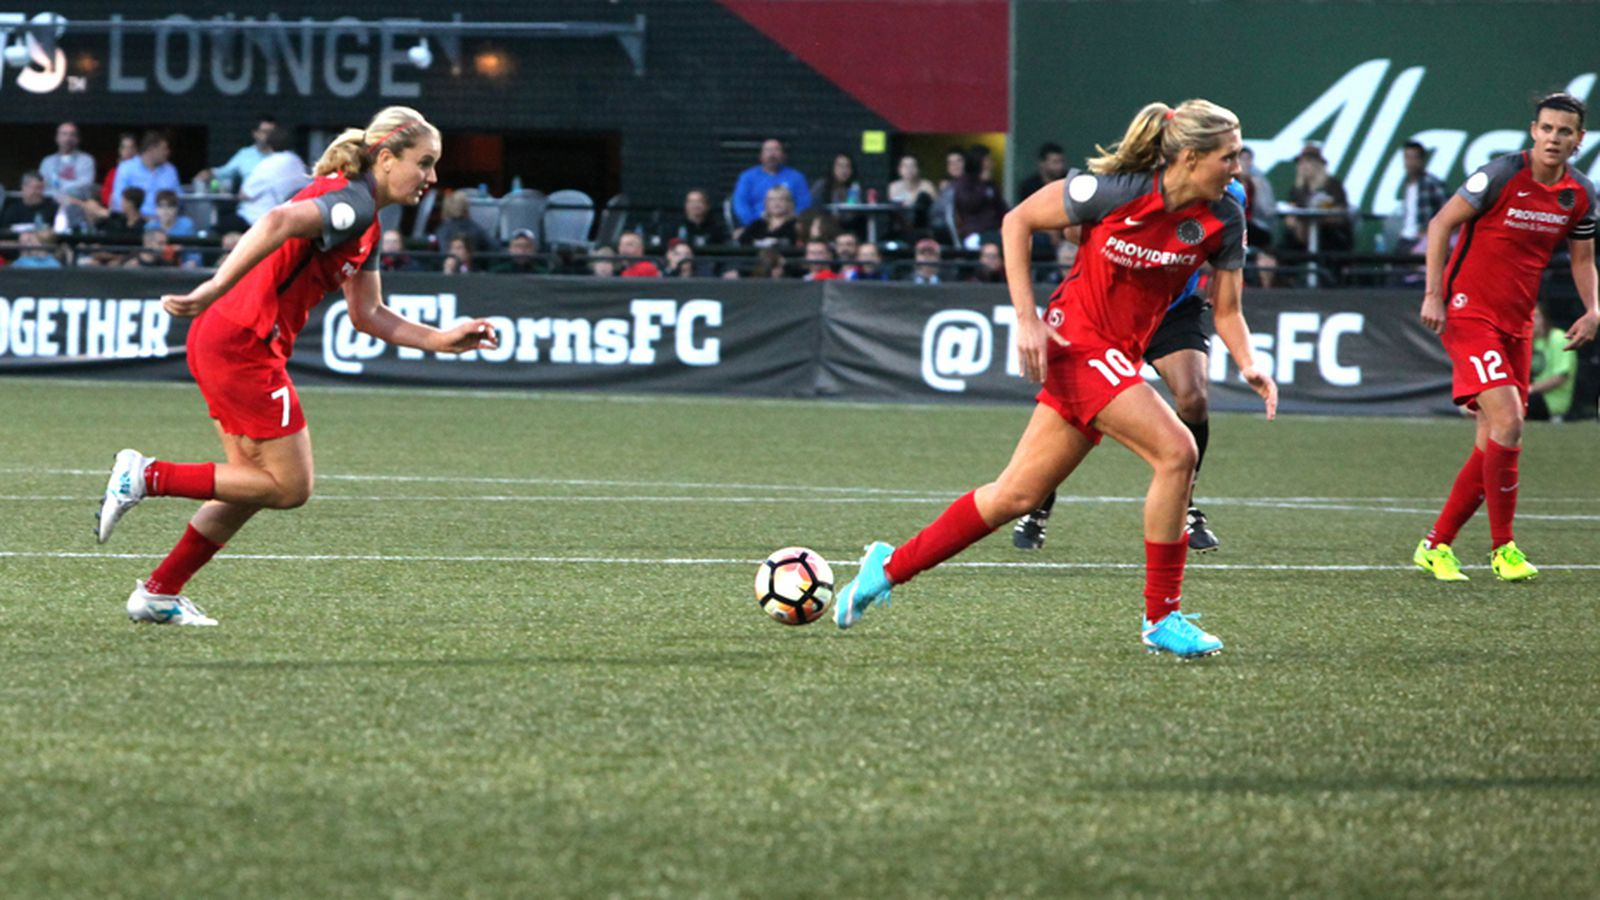 9342_lindsey_horan__7___allie_long__10__june_28__2017__by_jan_landis_the_asian_reporter_.0